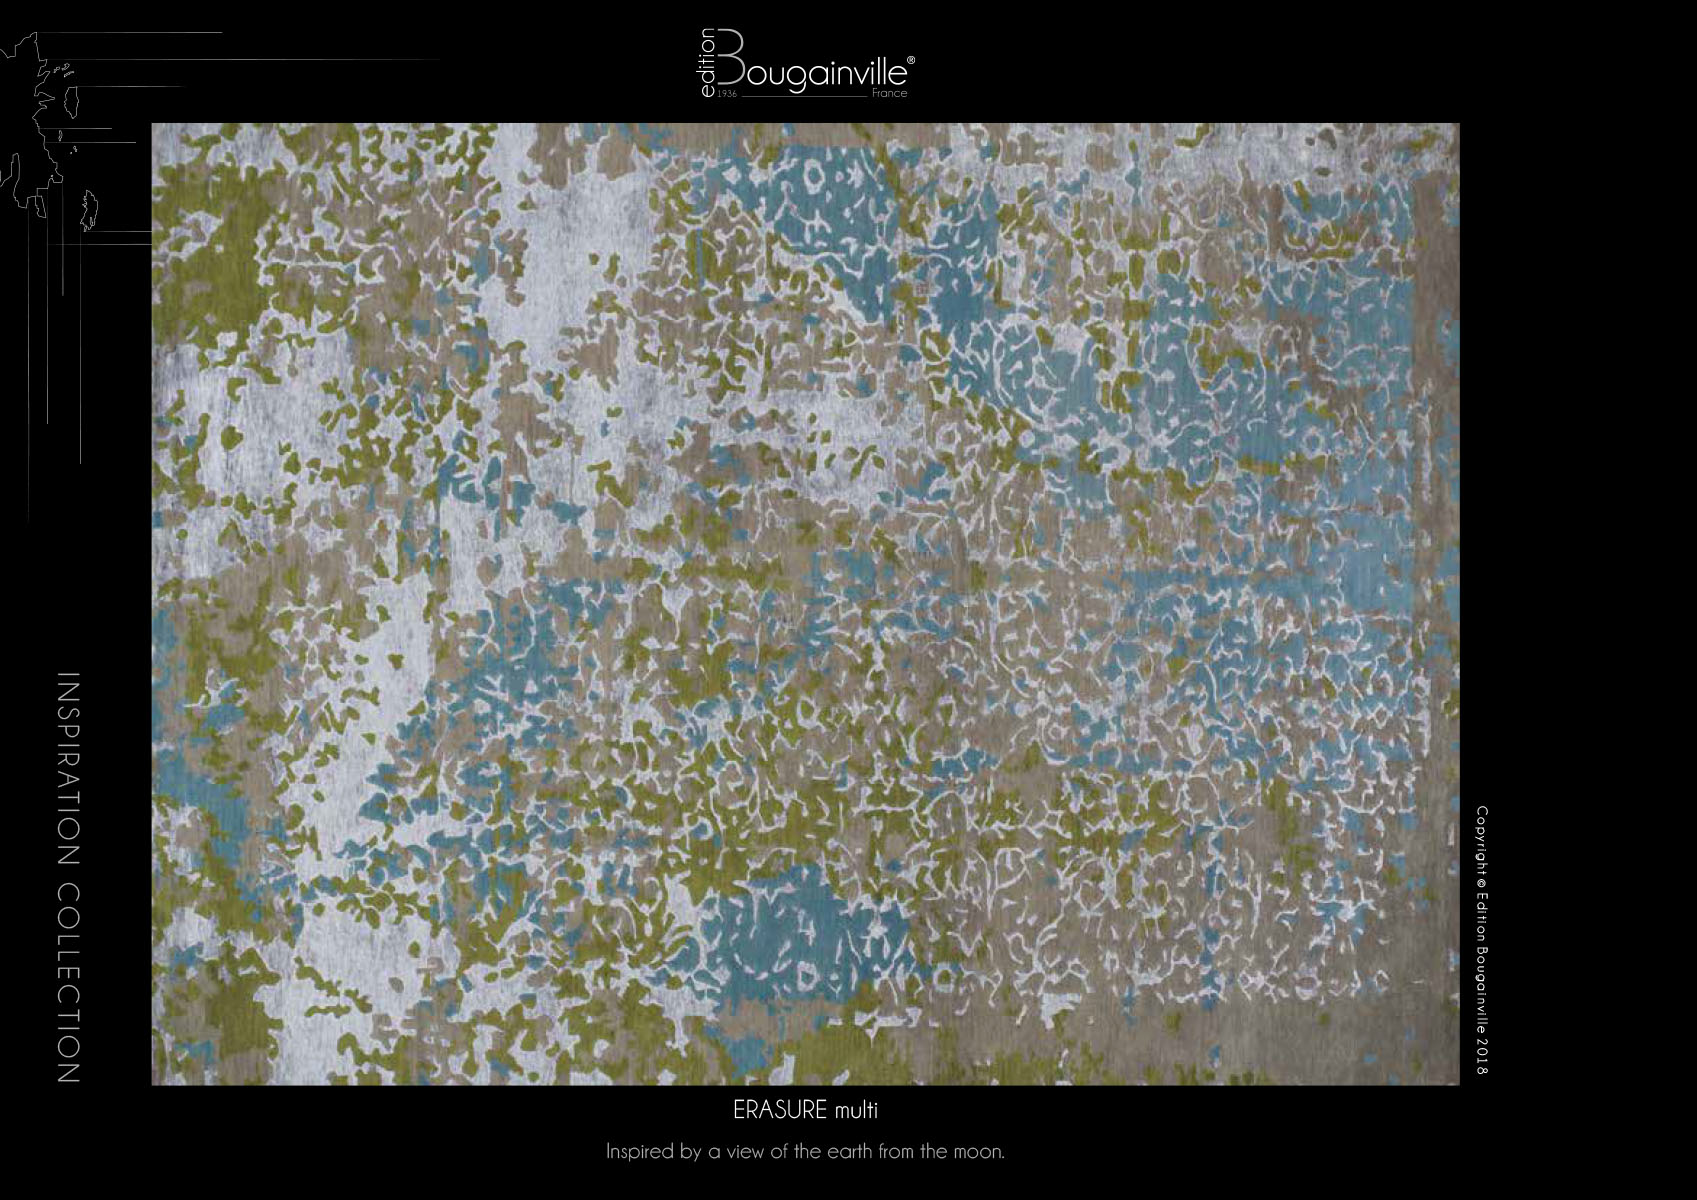 Ковер Edition Bougainville, ERASURE multi